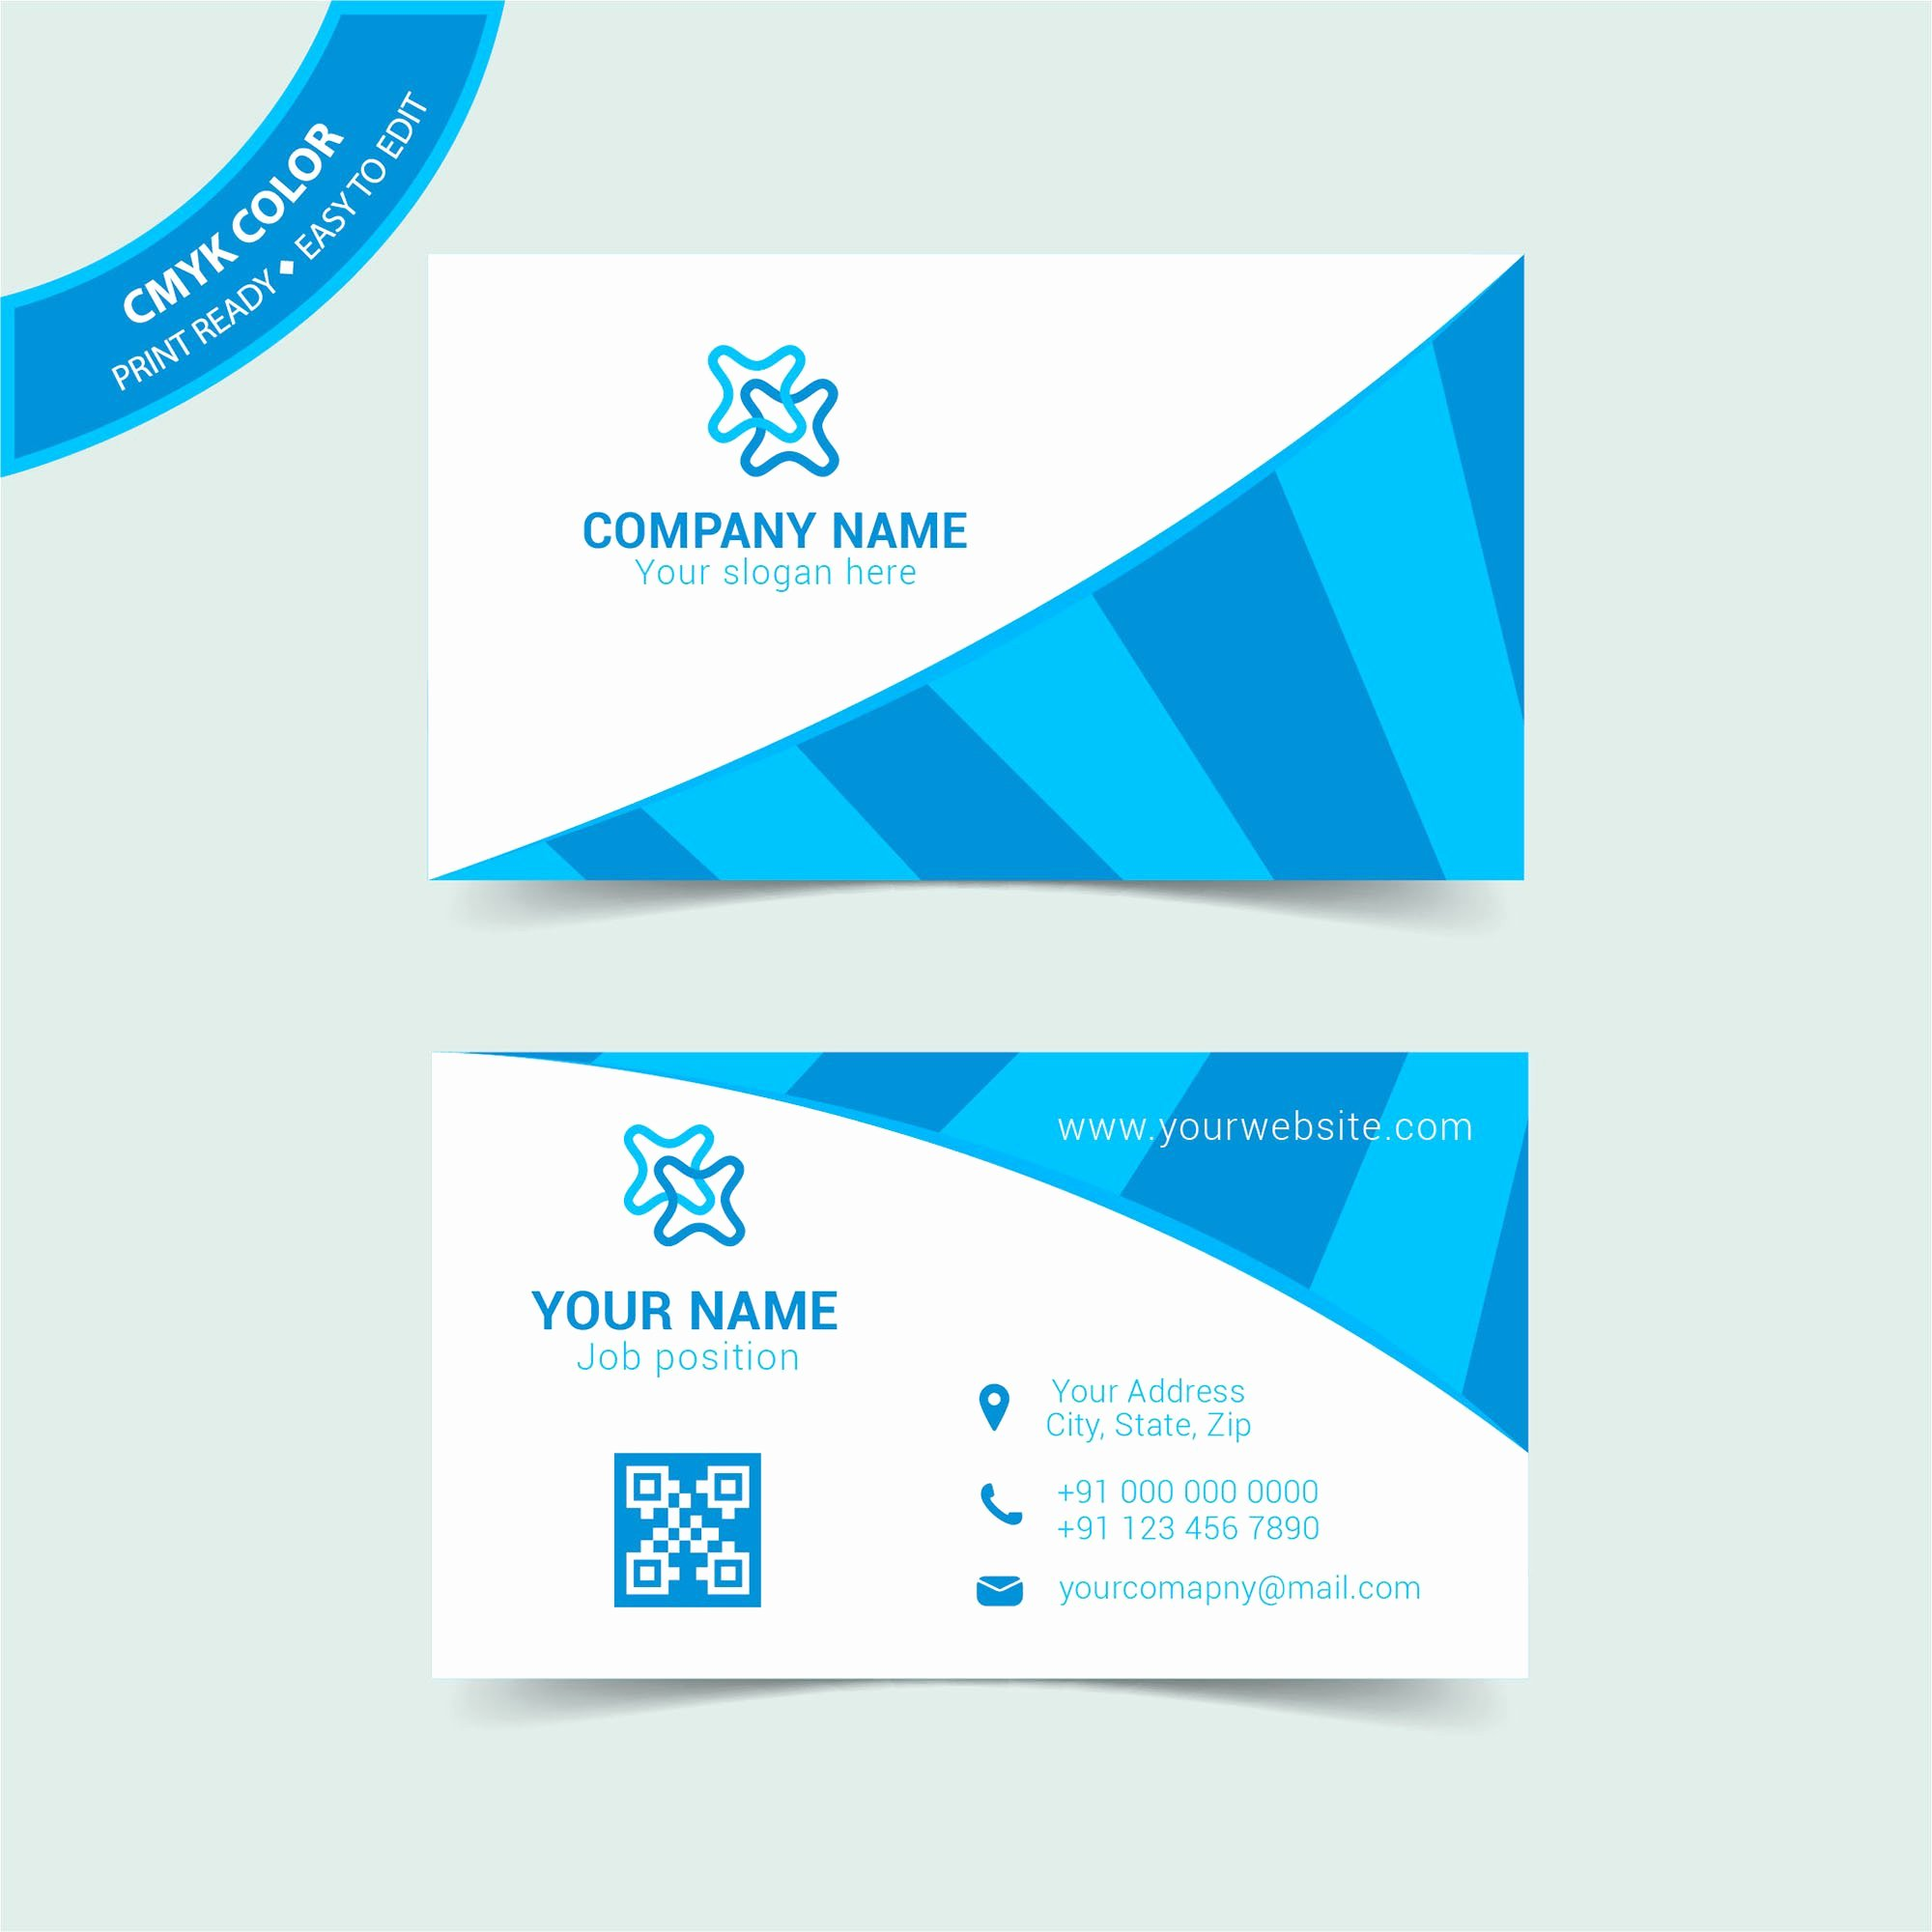 Student Business Cards Template Unique Latest S College Student Business Card Template